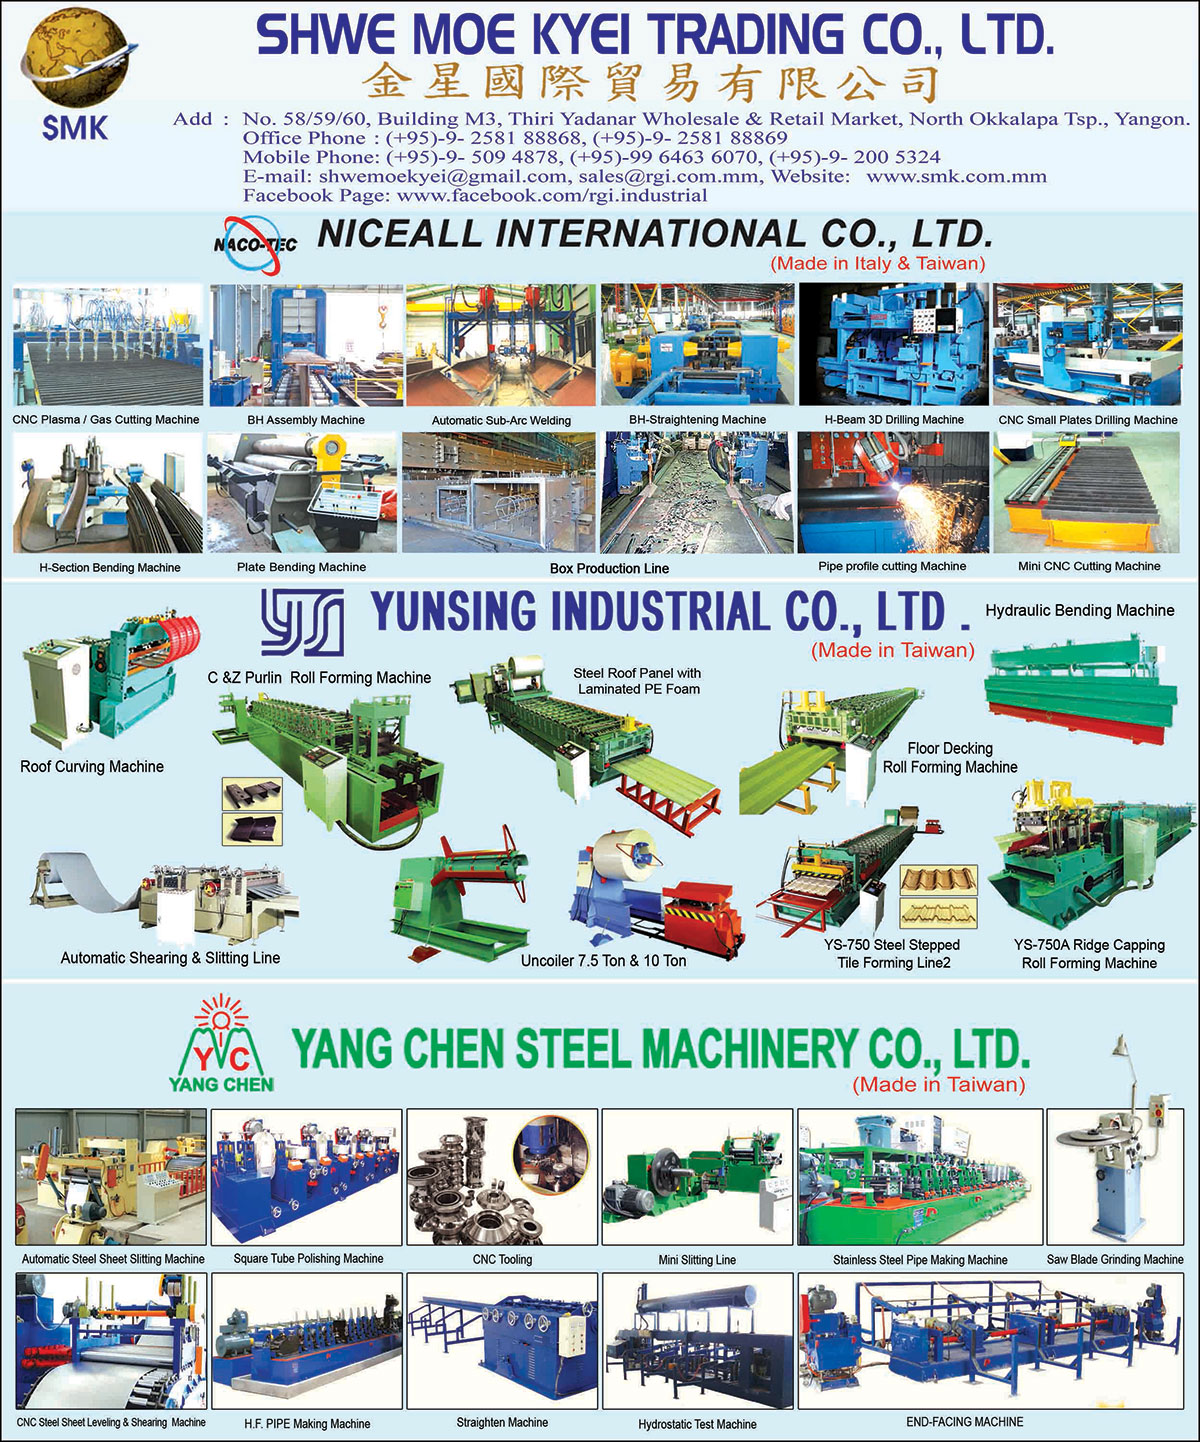 2018/Yangon/MBDL/Shwe-Moe-Kyei-Trading-Co-Ltd_Construction-Contractor-Equipment-&-Supplies_887.jpg